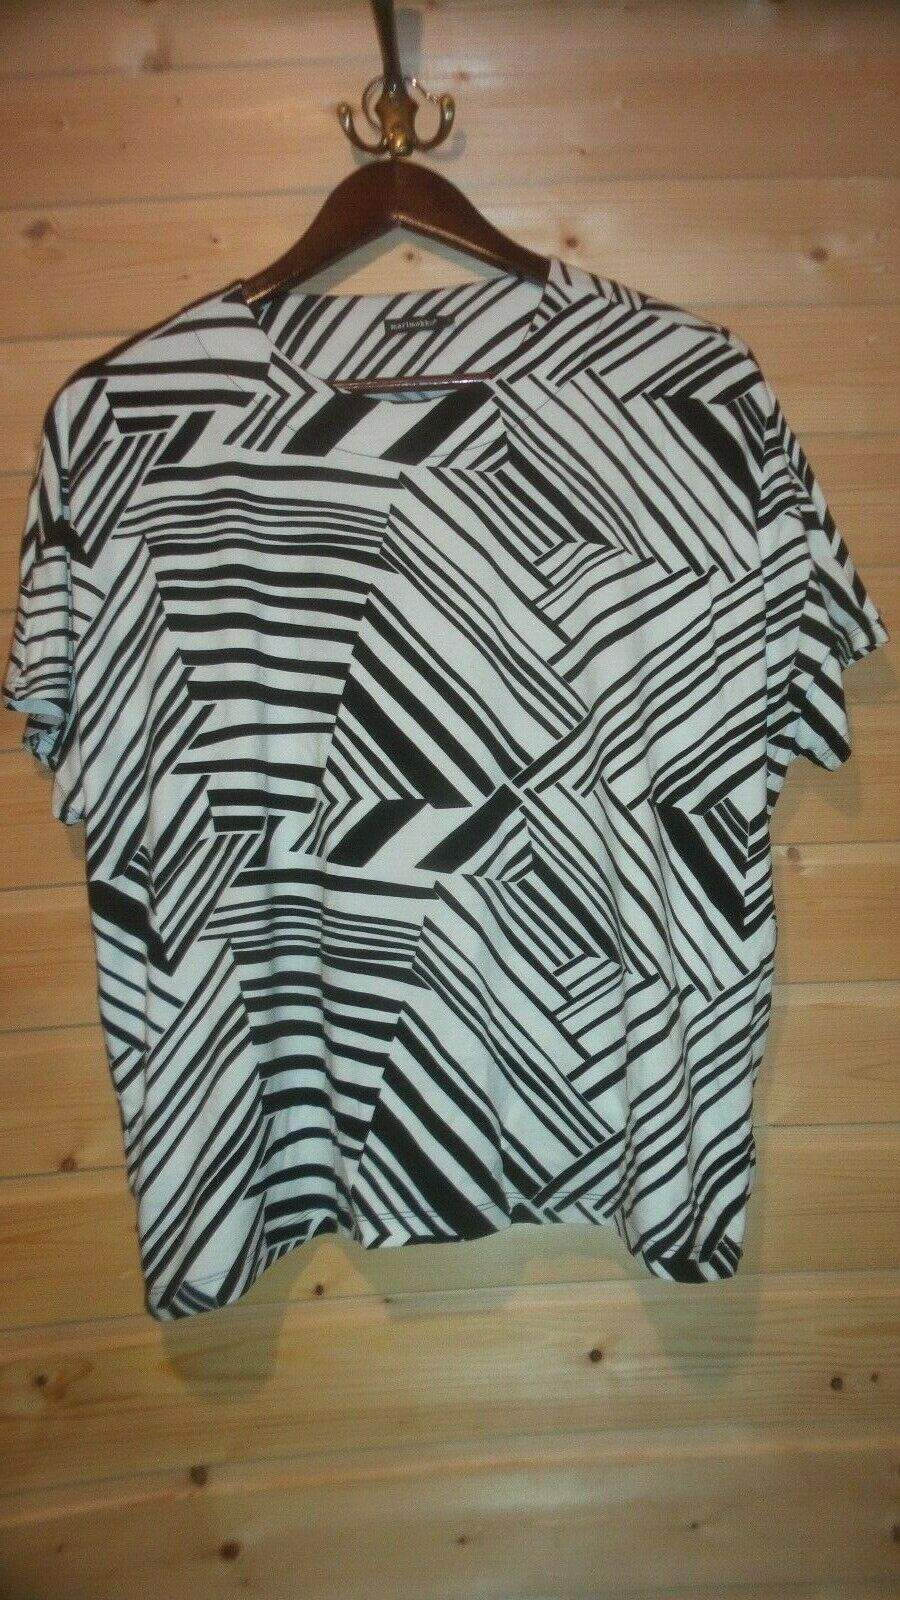 LADIES MARIMEKKO STRETCH VISCOSE SHORT SLEEVE SHIRT MARVELLA SZ L NWOT